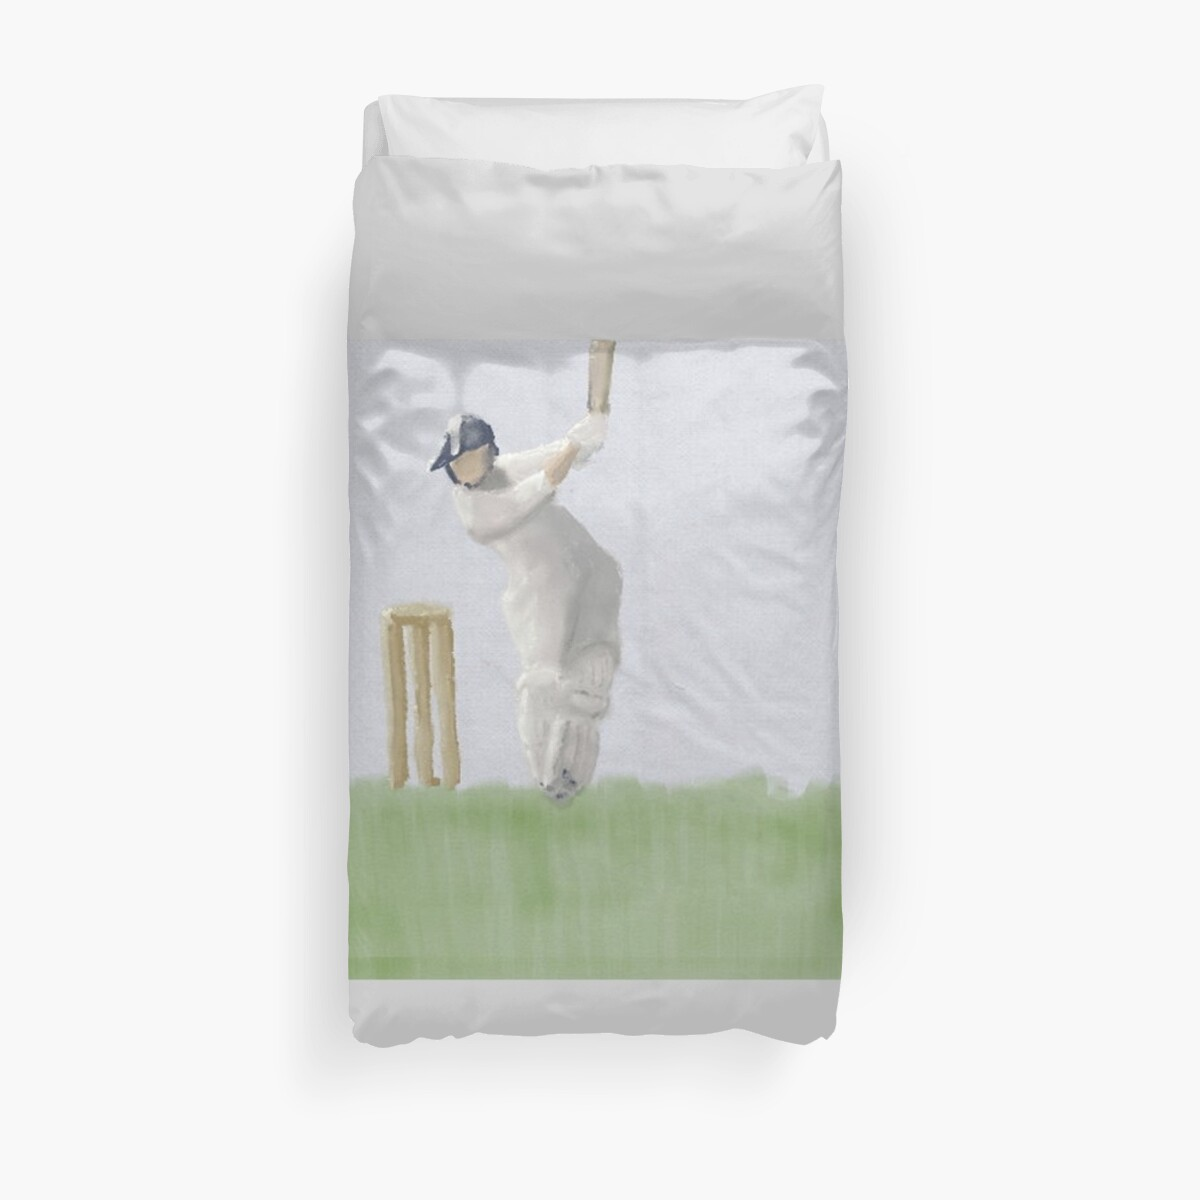 Quot Cricket Quot Duvet Cover By Eternaletizia Redbubble